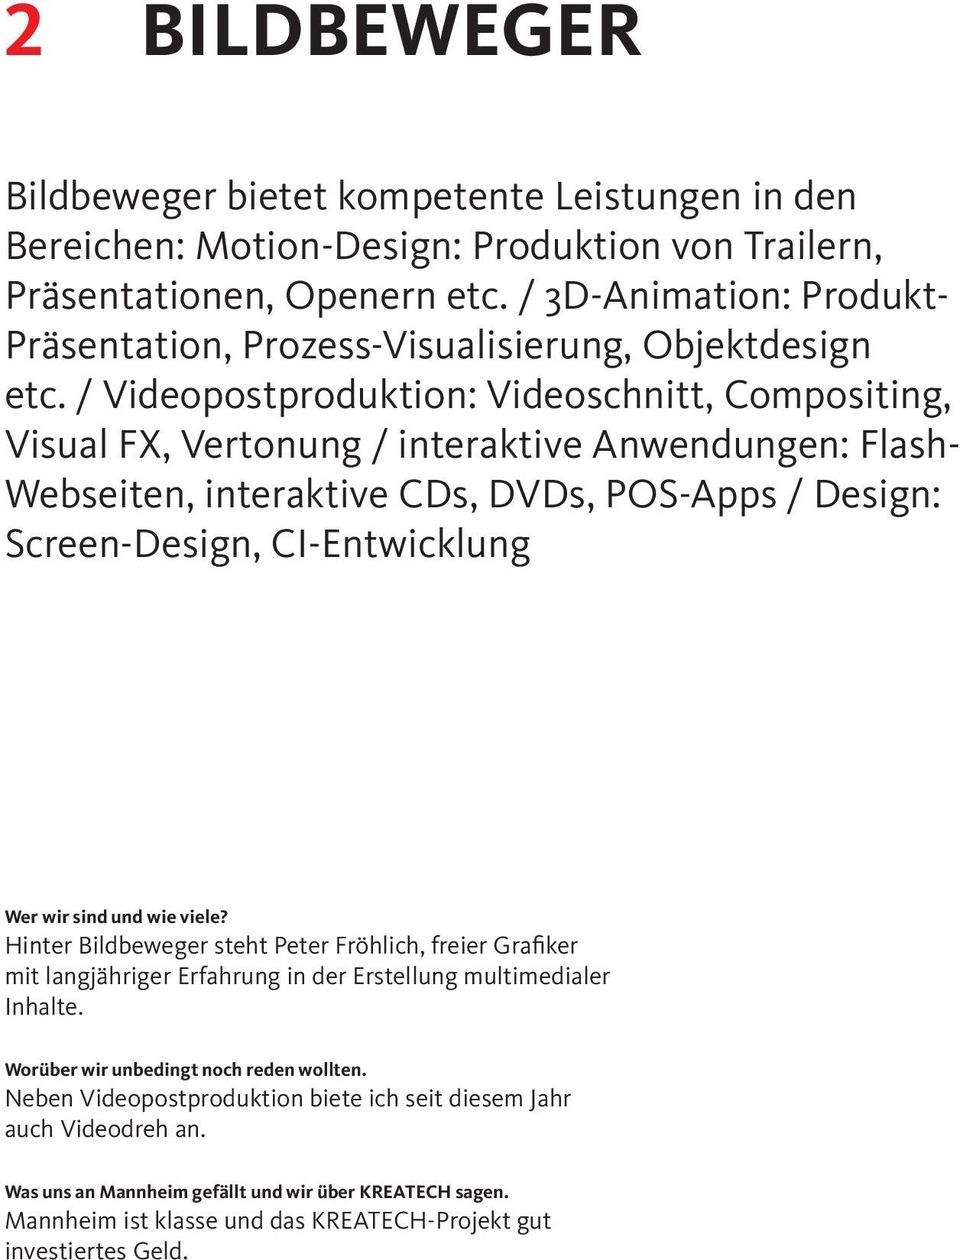 / Videopostproduktion: Videoschnitt, Compositing, Visual FX, Vertonung / interaktive Anwendungen: Flash- Webseiten, interaktive CDs, DVDs, POS-Apps / Design: Screen-Design, CI-Entwicklung Wer wir